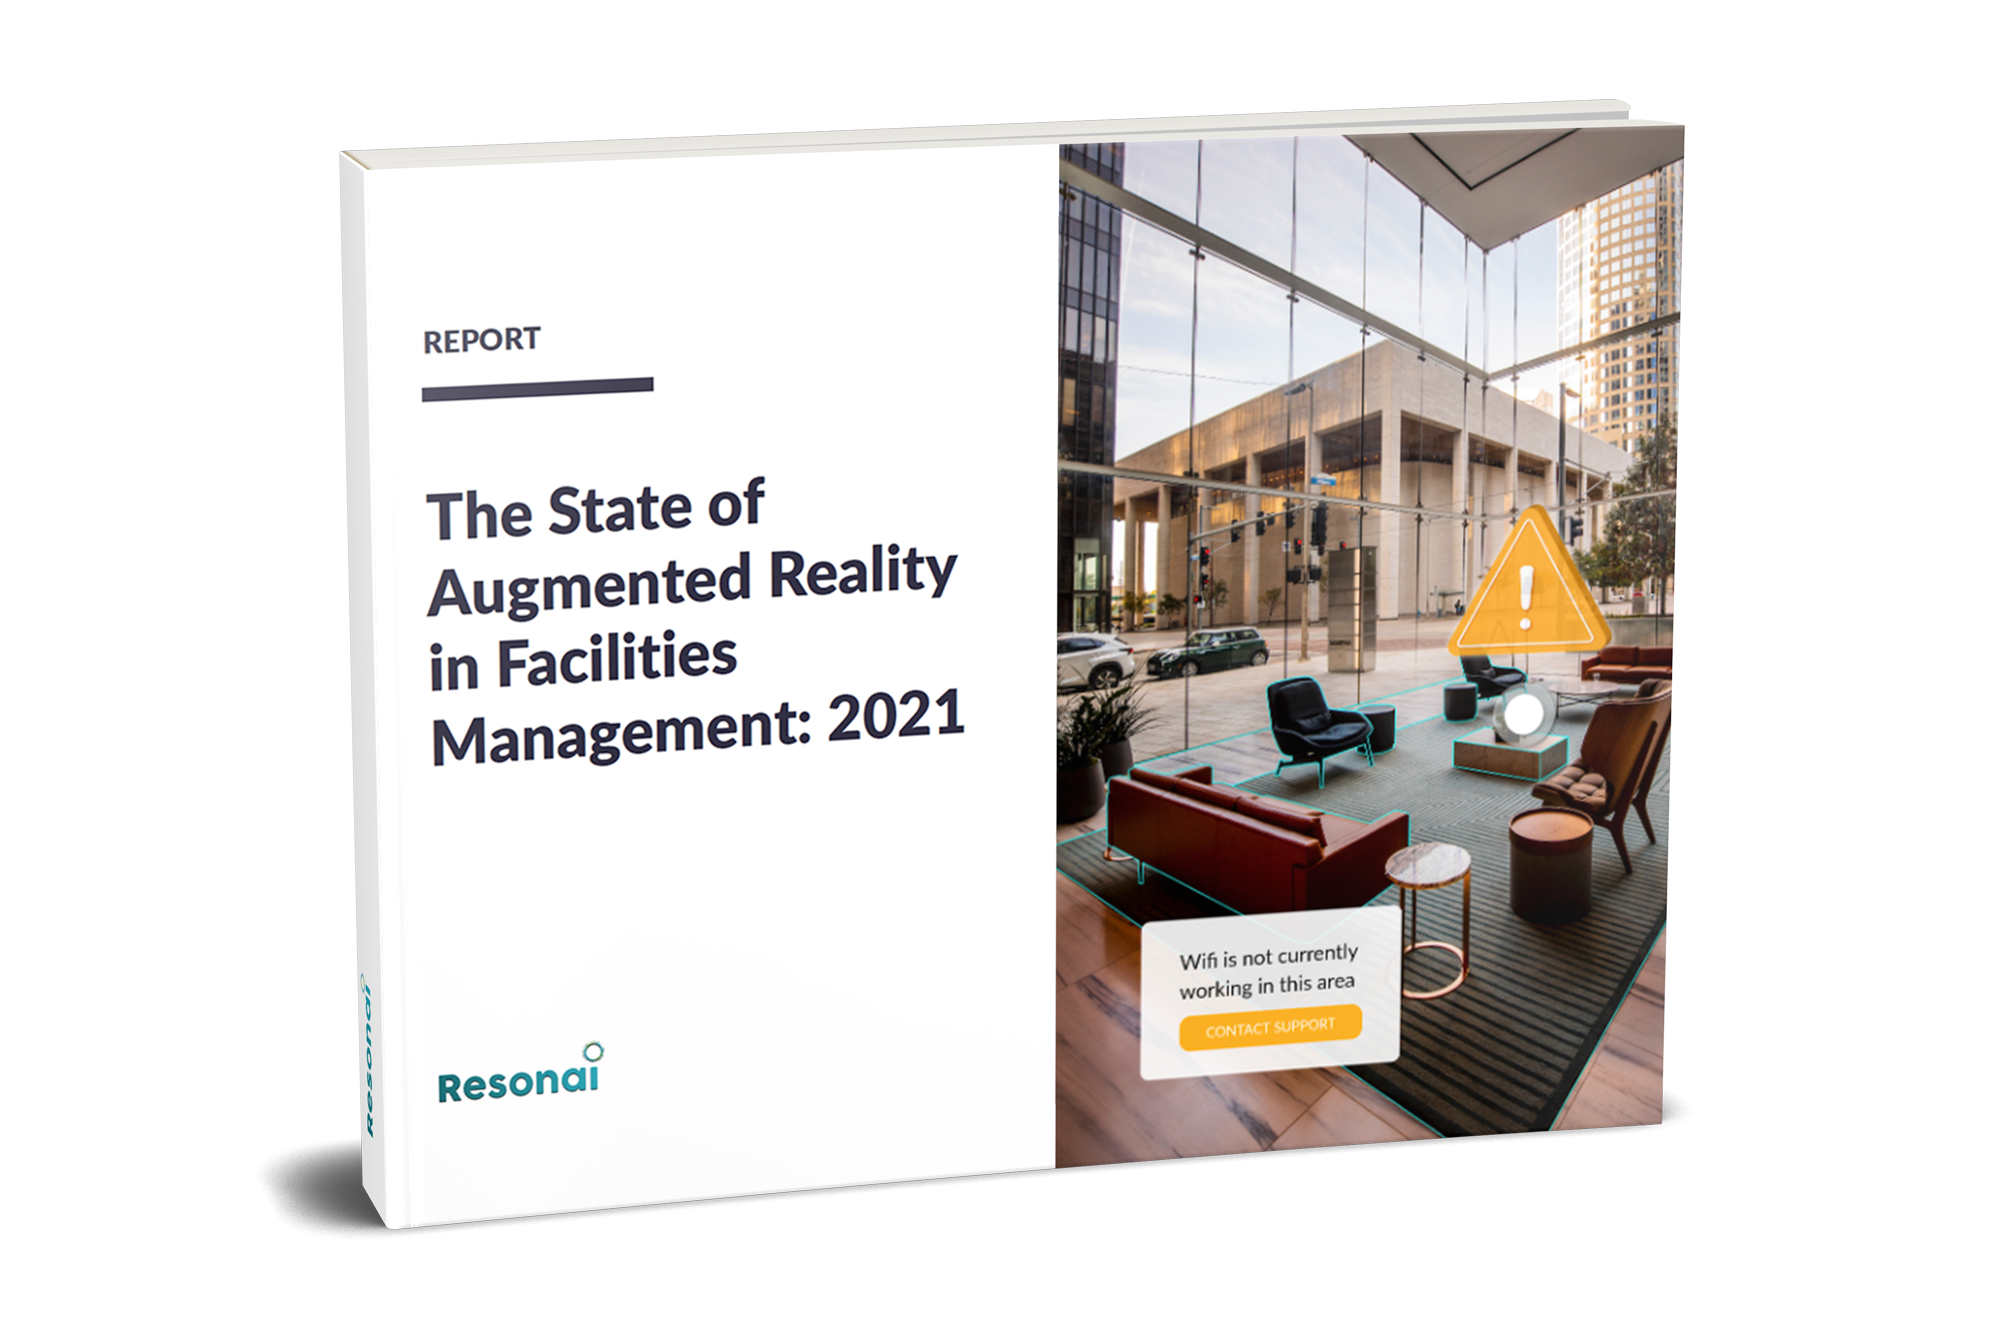 The State of Augmented Reality in Facilities Management